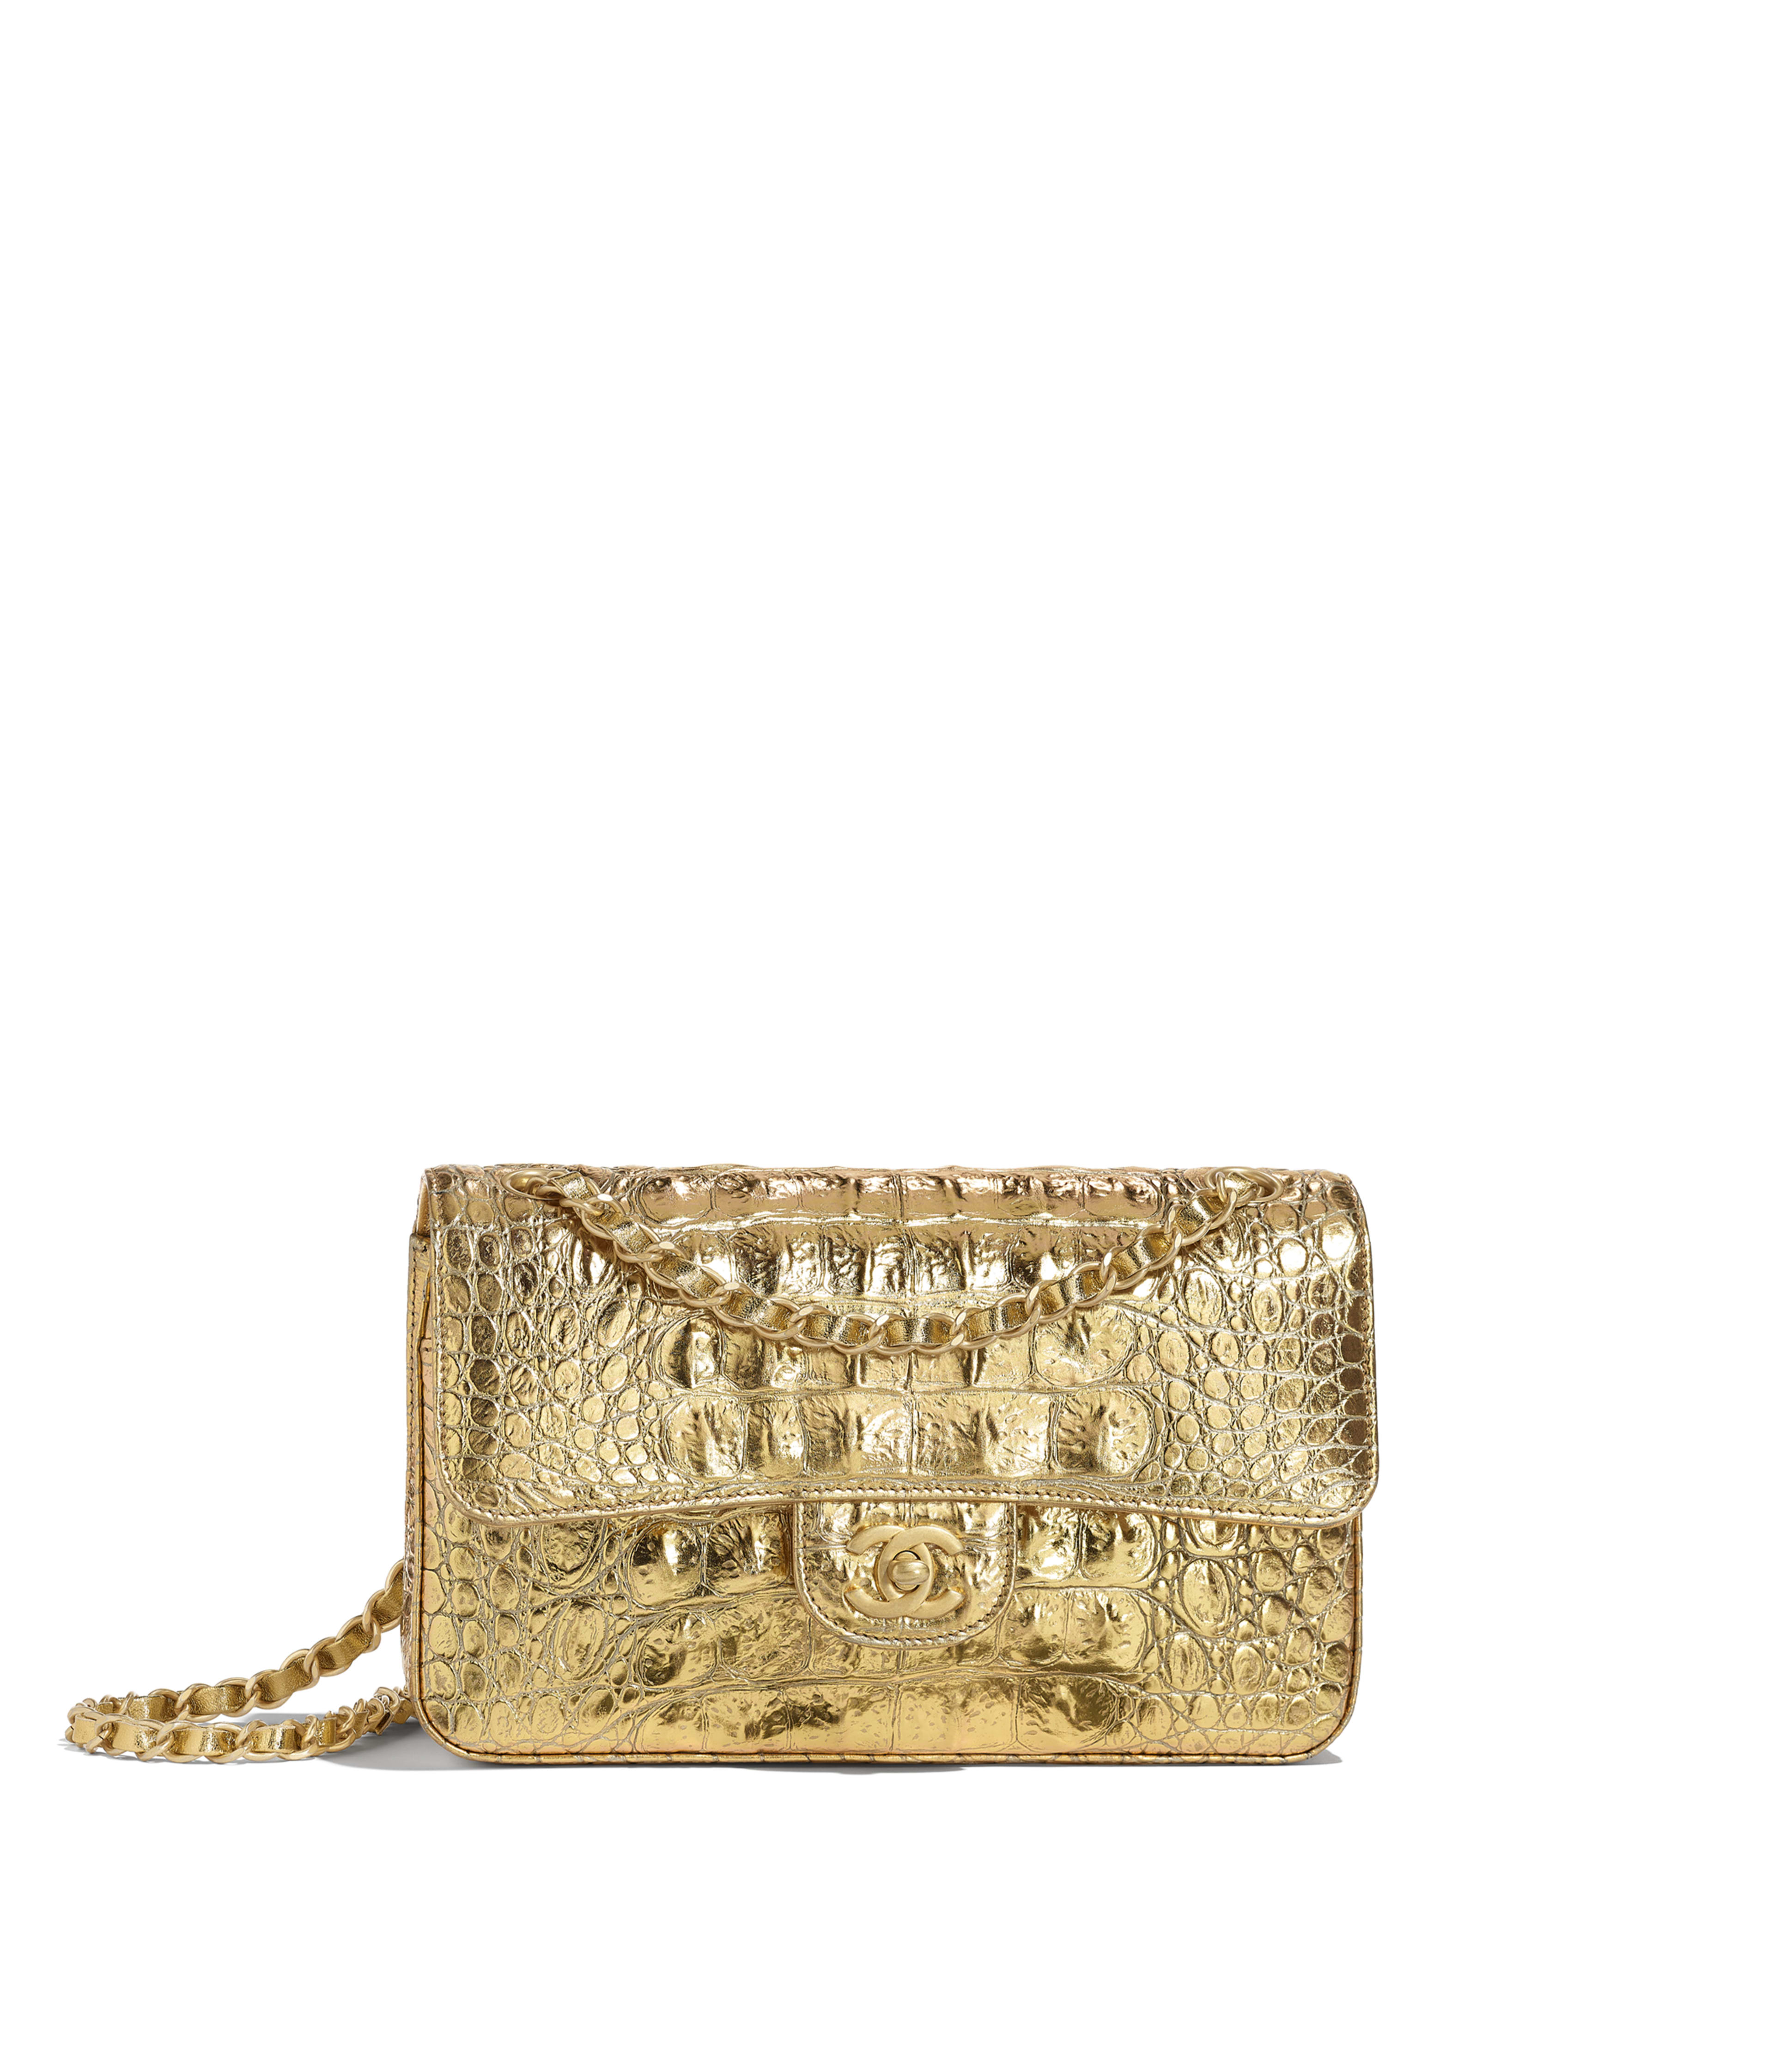 dd63d06904fa Small Classic Handbag Metallic Crocodile Embossed Calfskin & Gold Metal,  Gold Ref. A01113B00798N4752